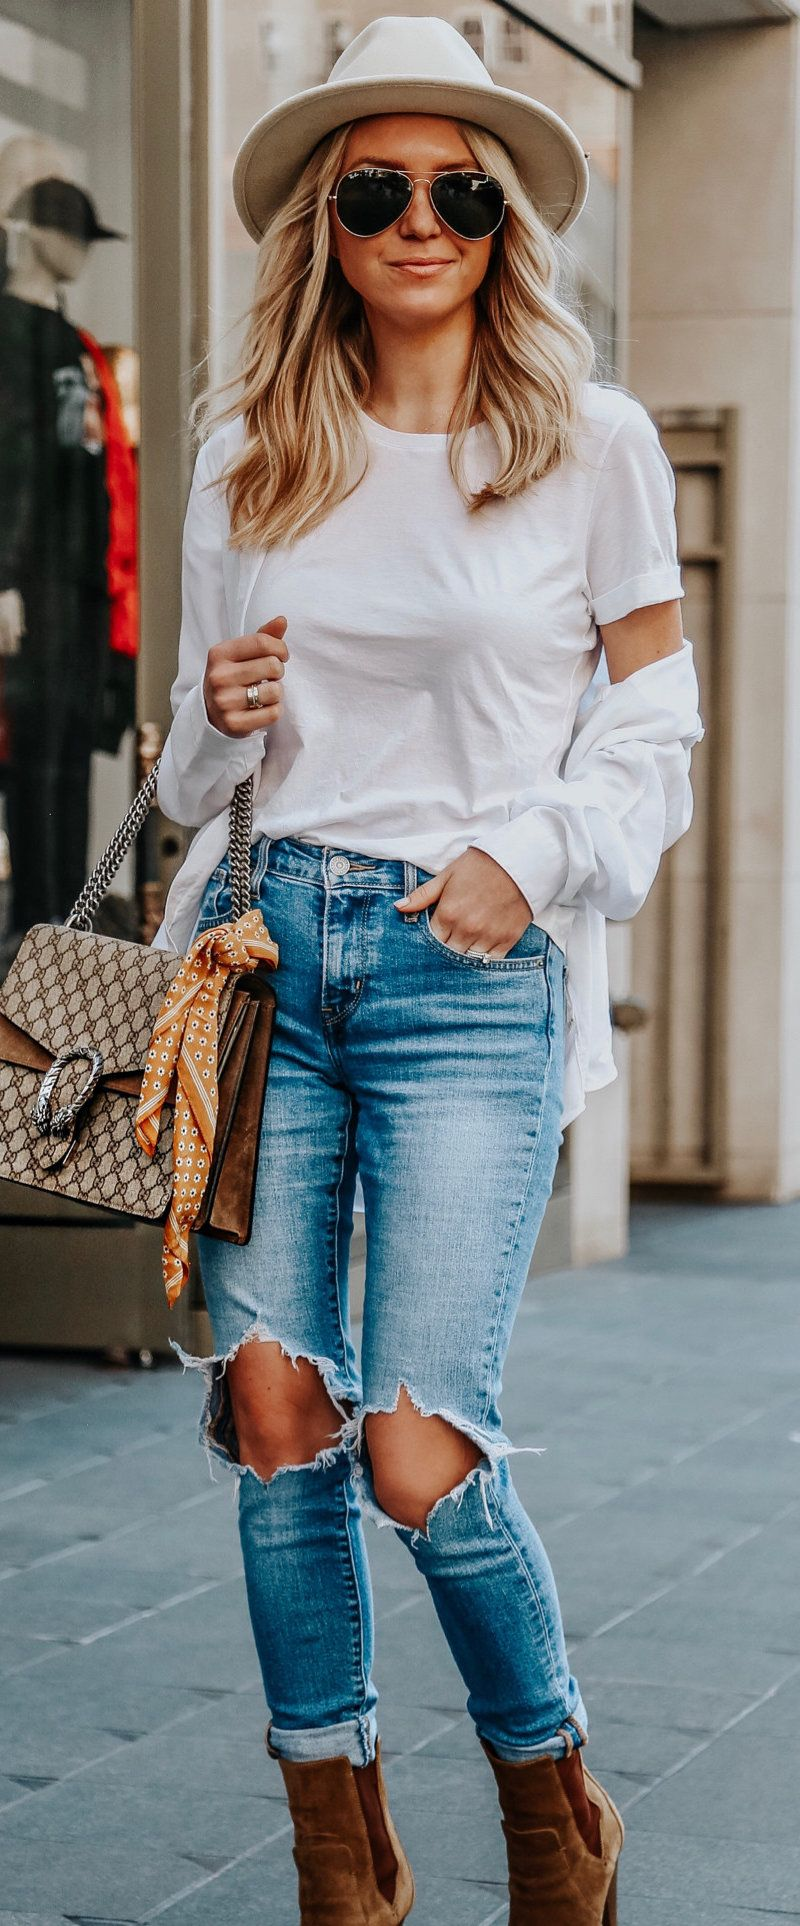 Discussion on this topic: 18 Cute Casual Friday Outfits For Women , 18-cute-casual-friday-outfits-for-women/